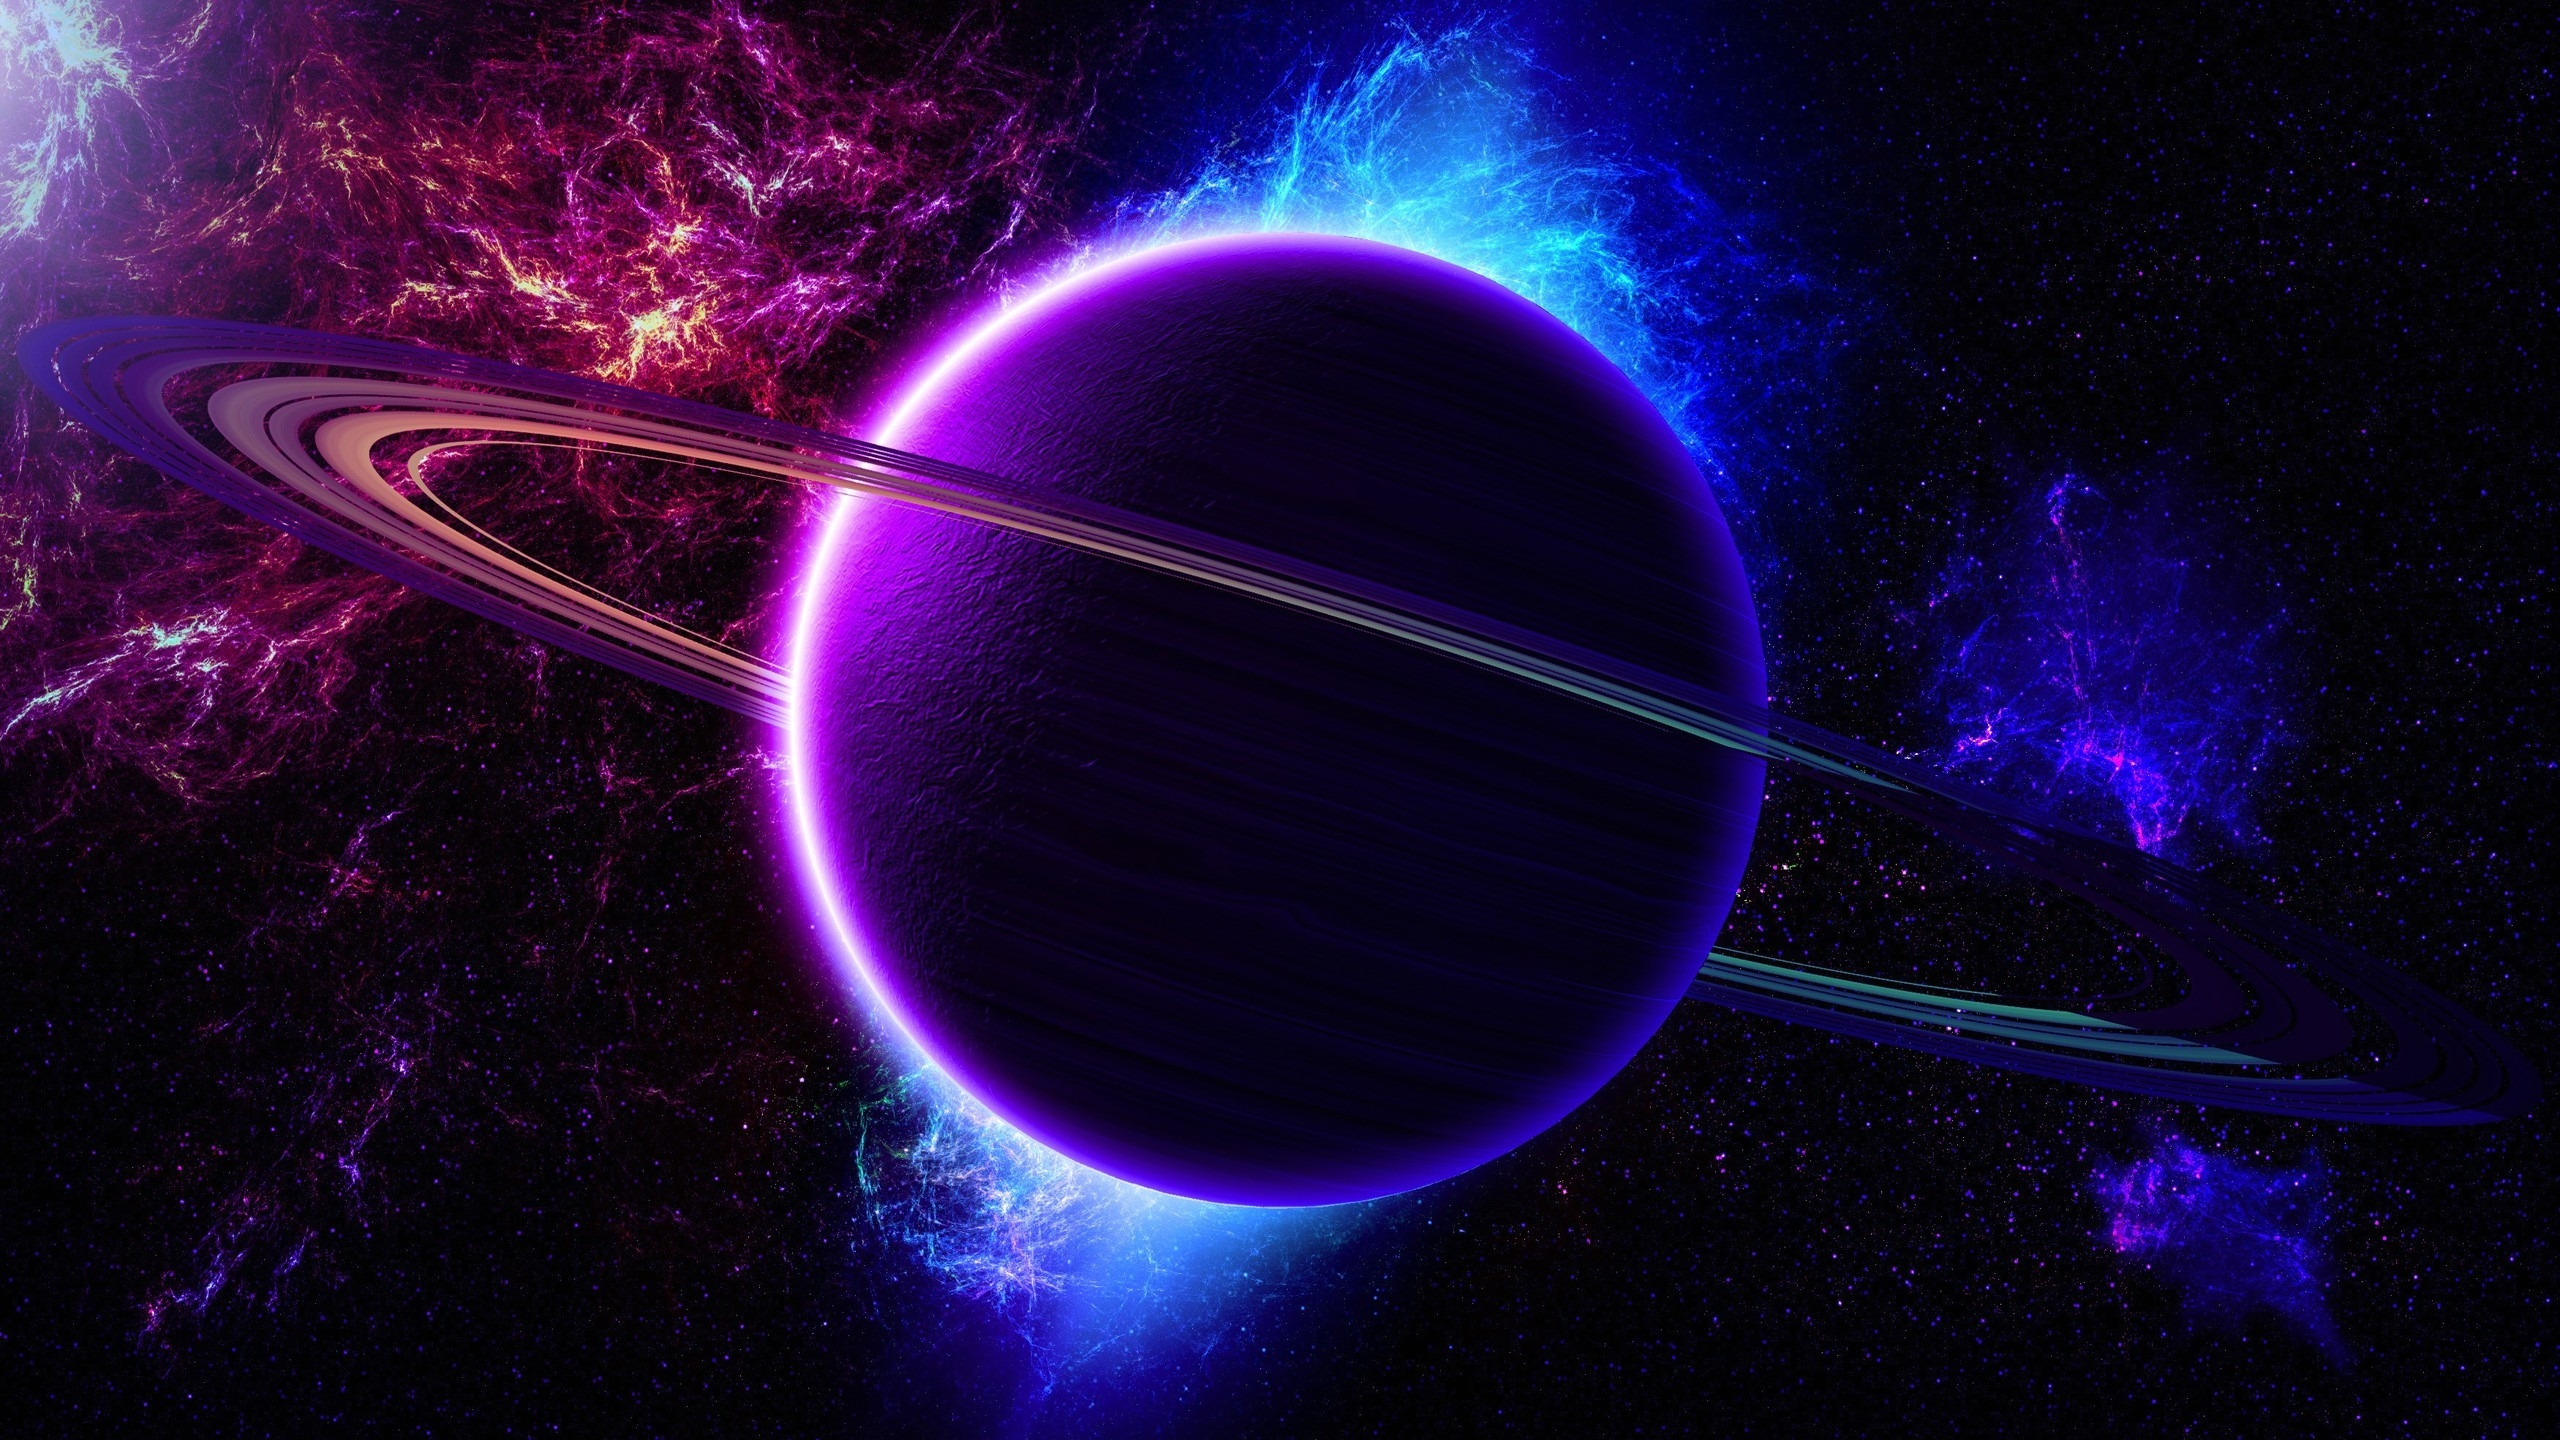 2560x1440 Colorful Galaxy View YouTube Channel Cover